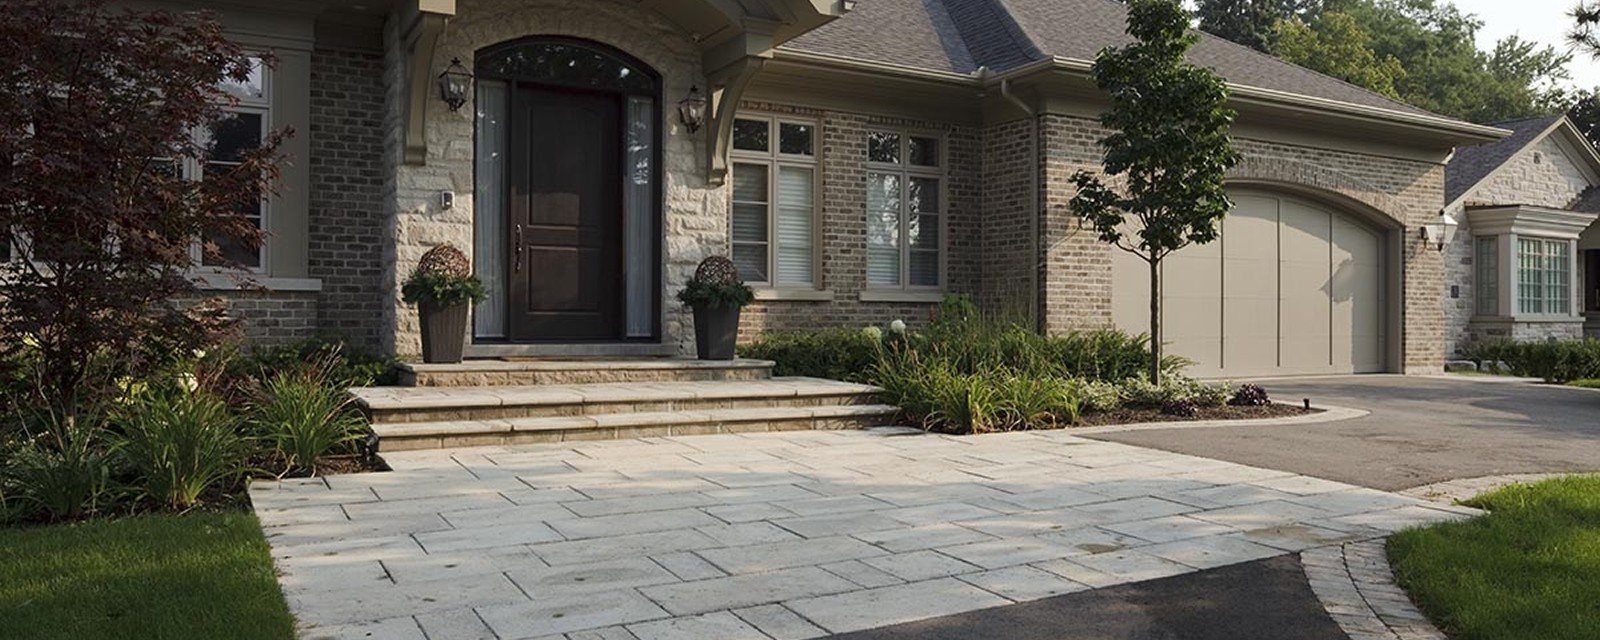 Botticino-Tumbled Marble™ Structural Flagstone™